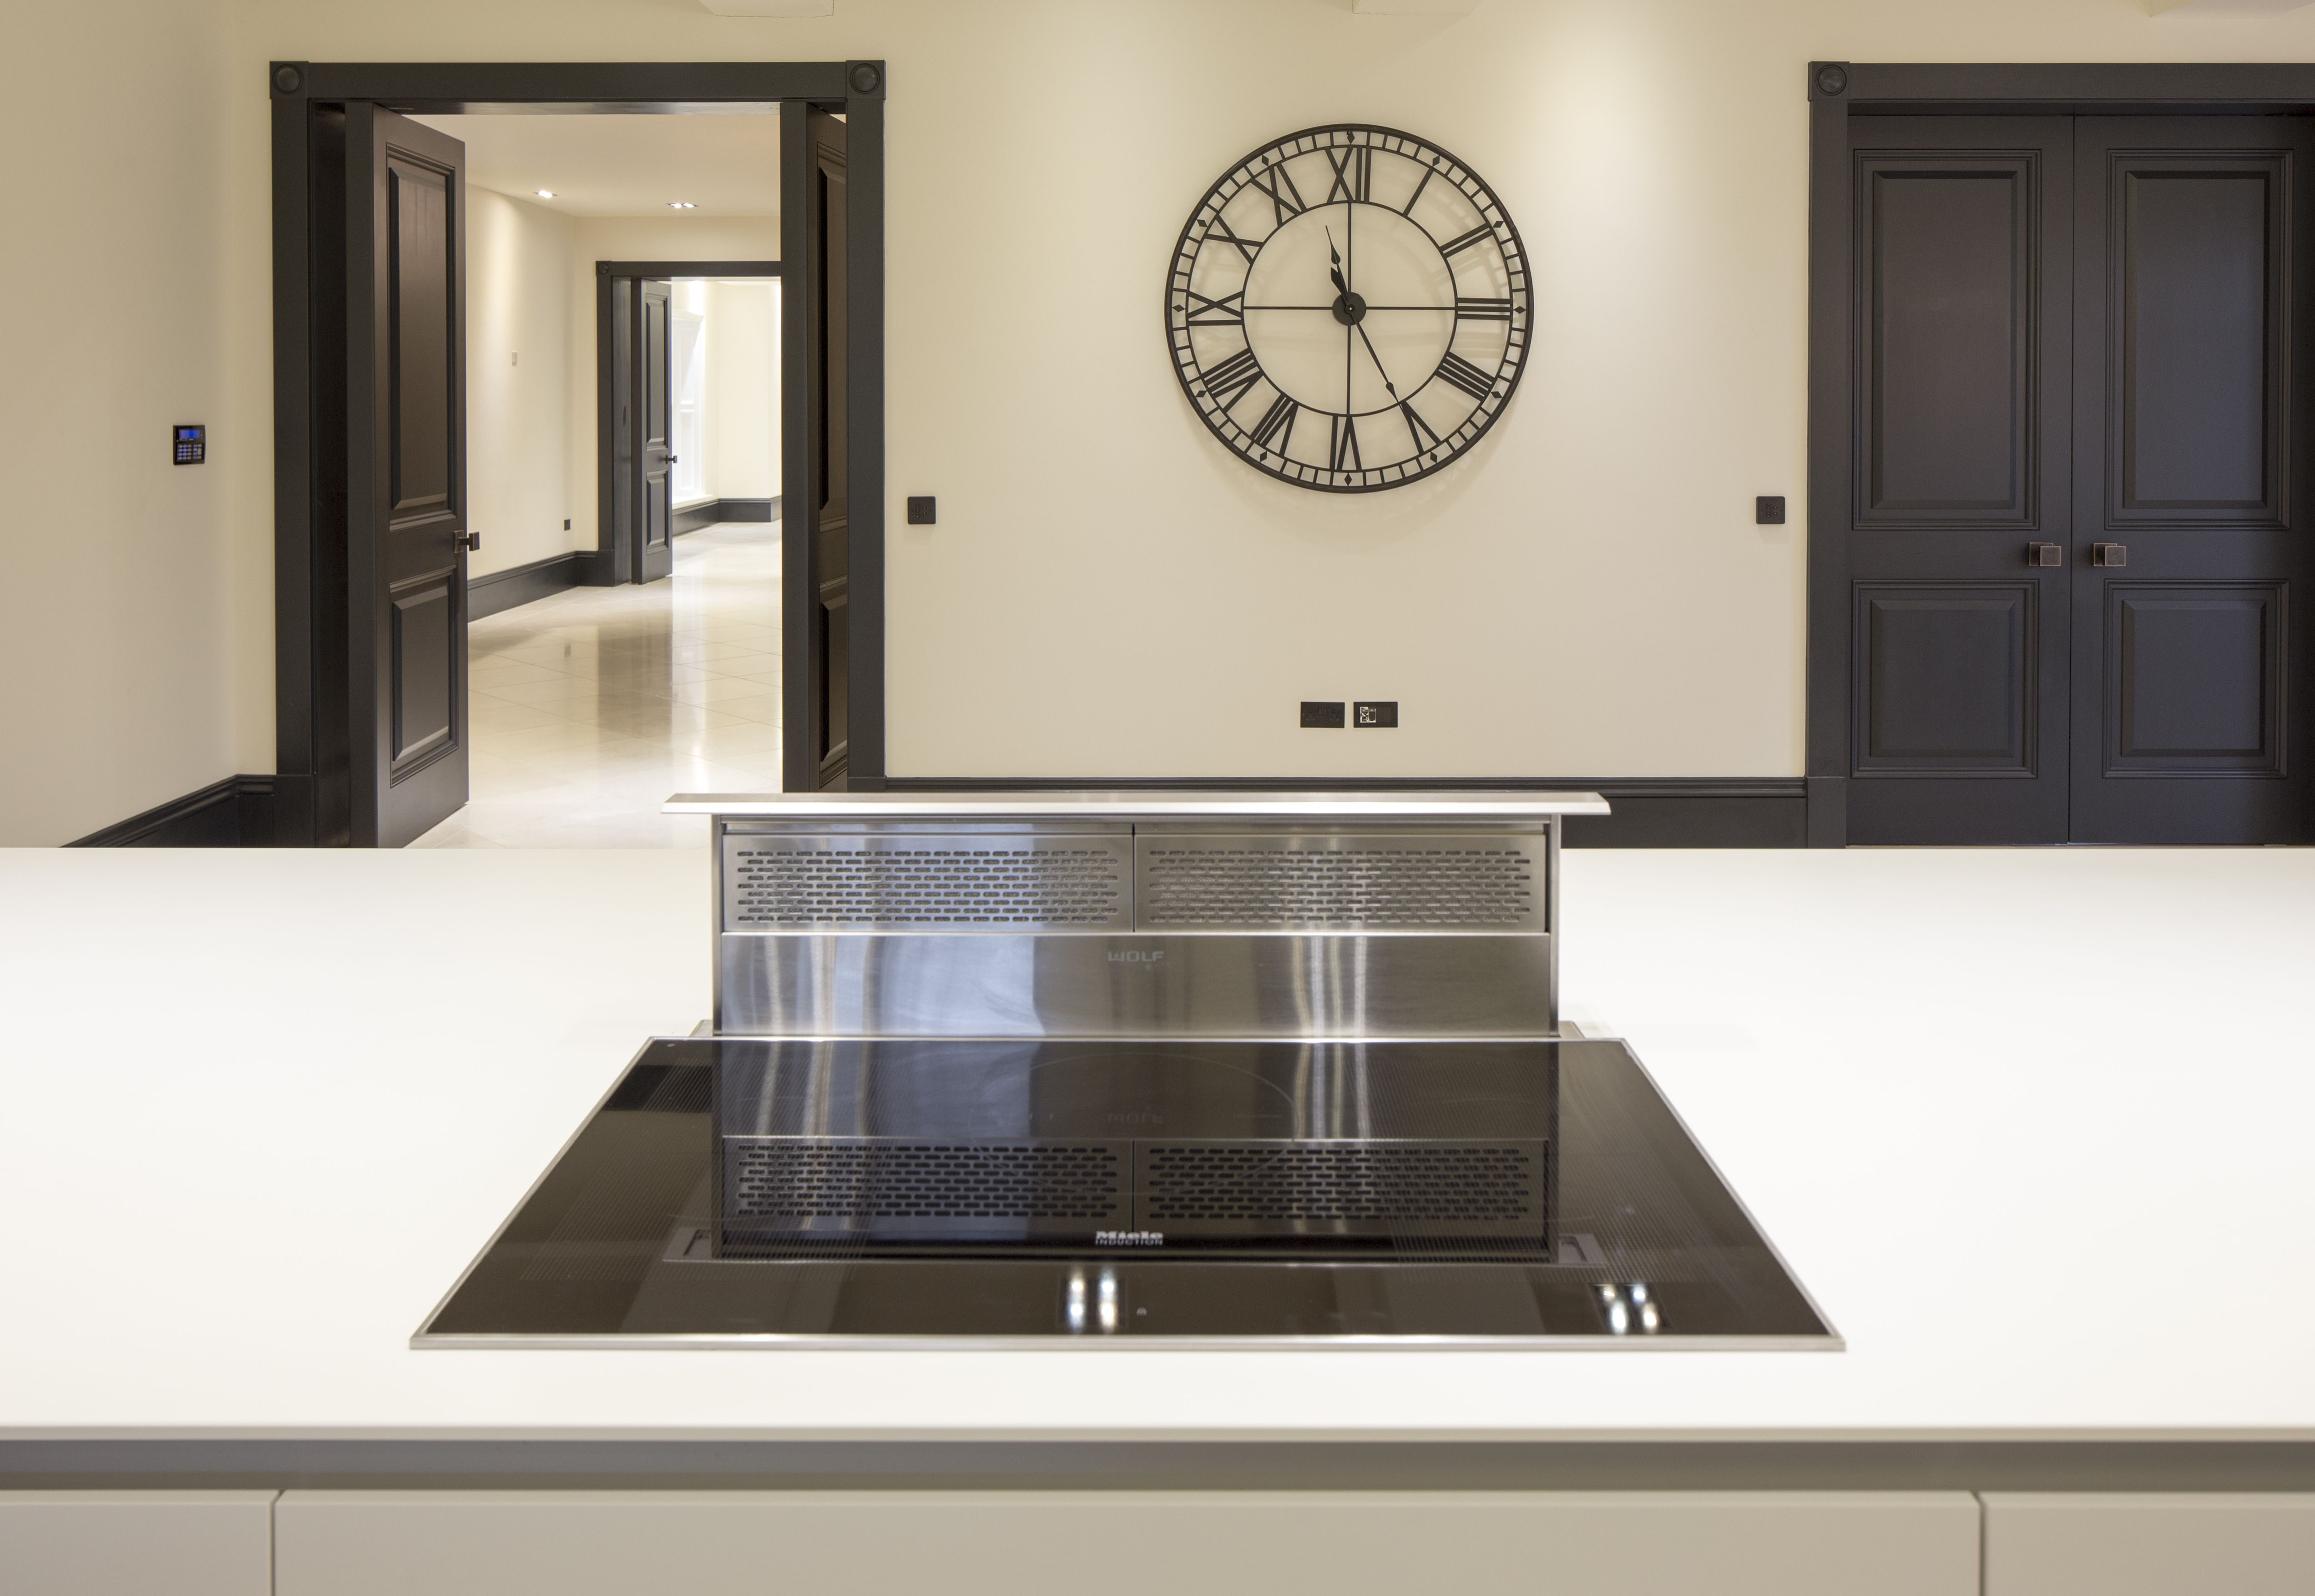 Extractor | Escape to the Country - Kitchen | Pinterest | Kitchens ...